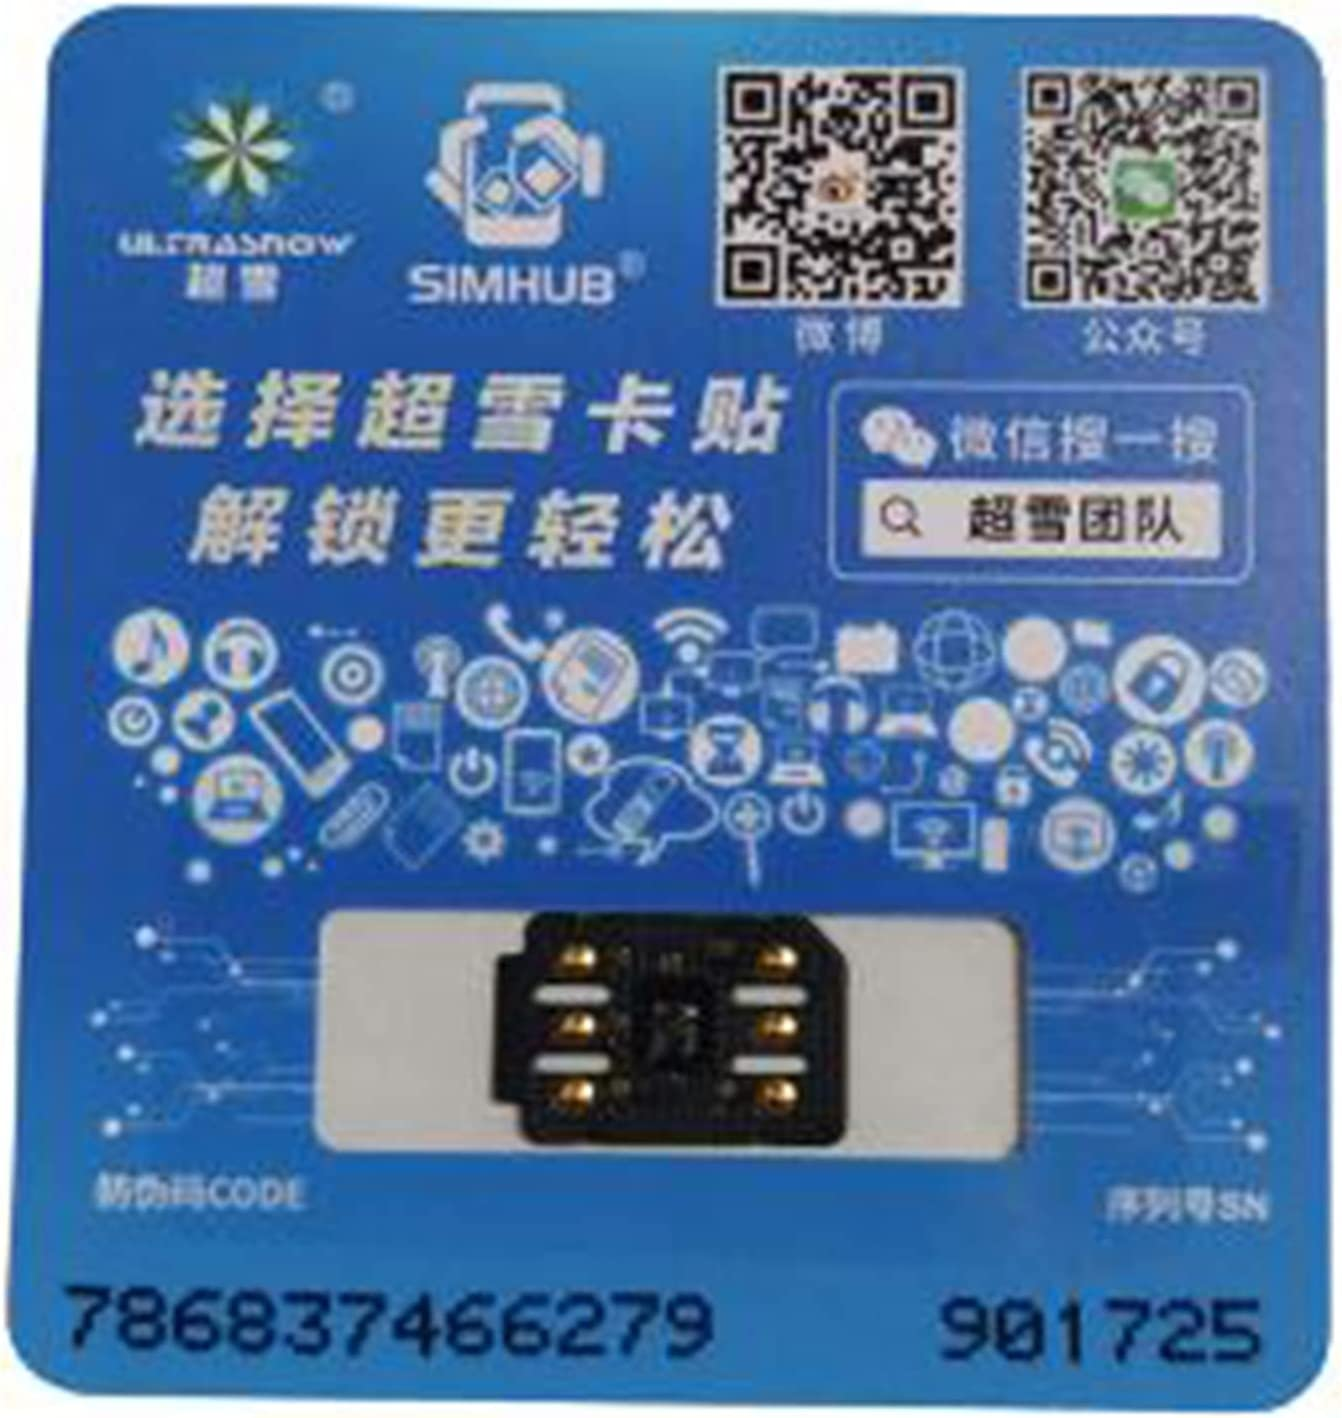 Unlock Chip Sim Card for Apple iPhone 11/12/Xs/MAX/XR/8/7/6/6S/5S/SE Plus/8 Plus Sim for iOS 14 Automatic ICCID Via OTA. Video Instructions Link Shown in Card. RSS2